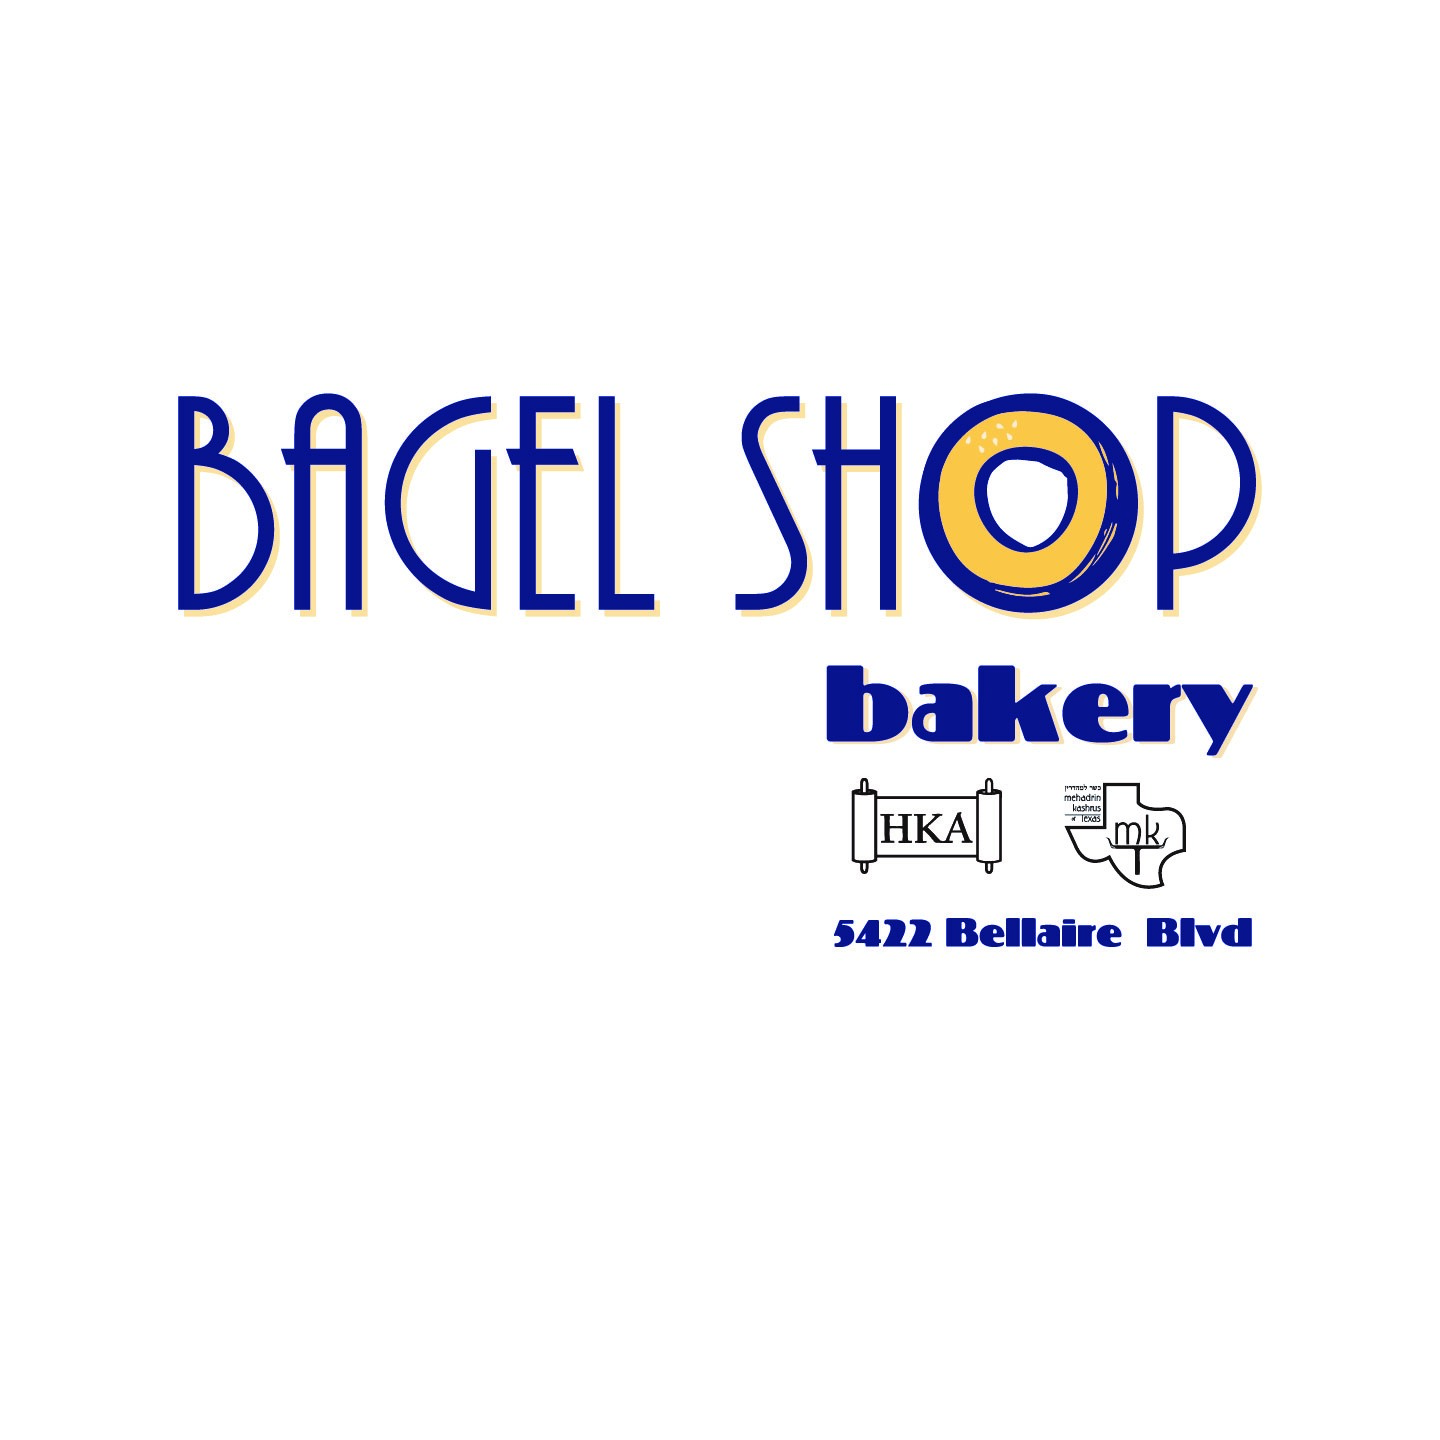 Bagel Shop Bakery HKA MKT 5422 Bellaire Blvd